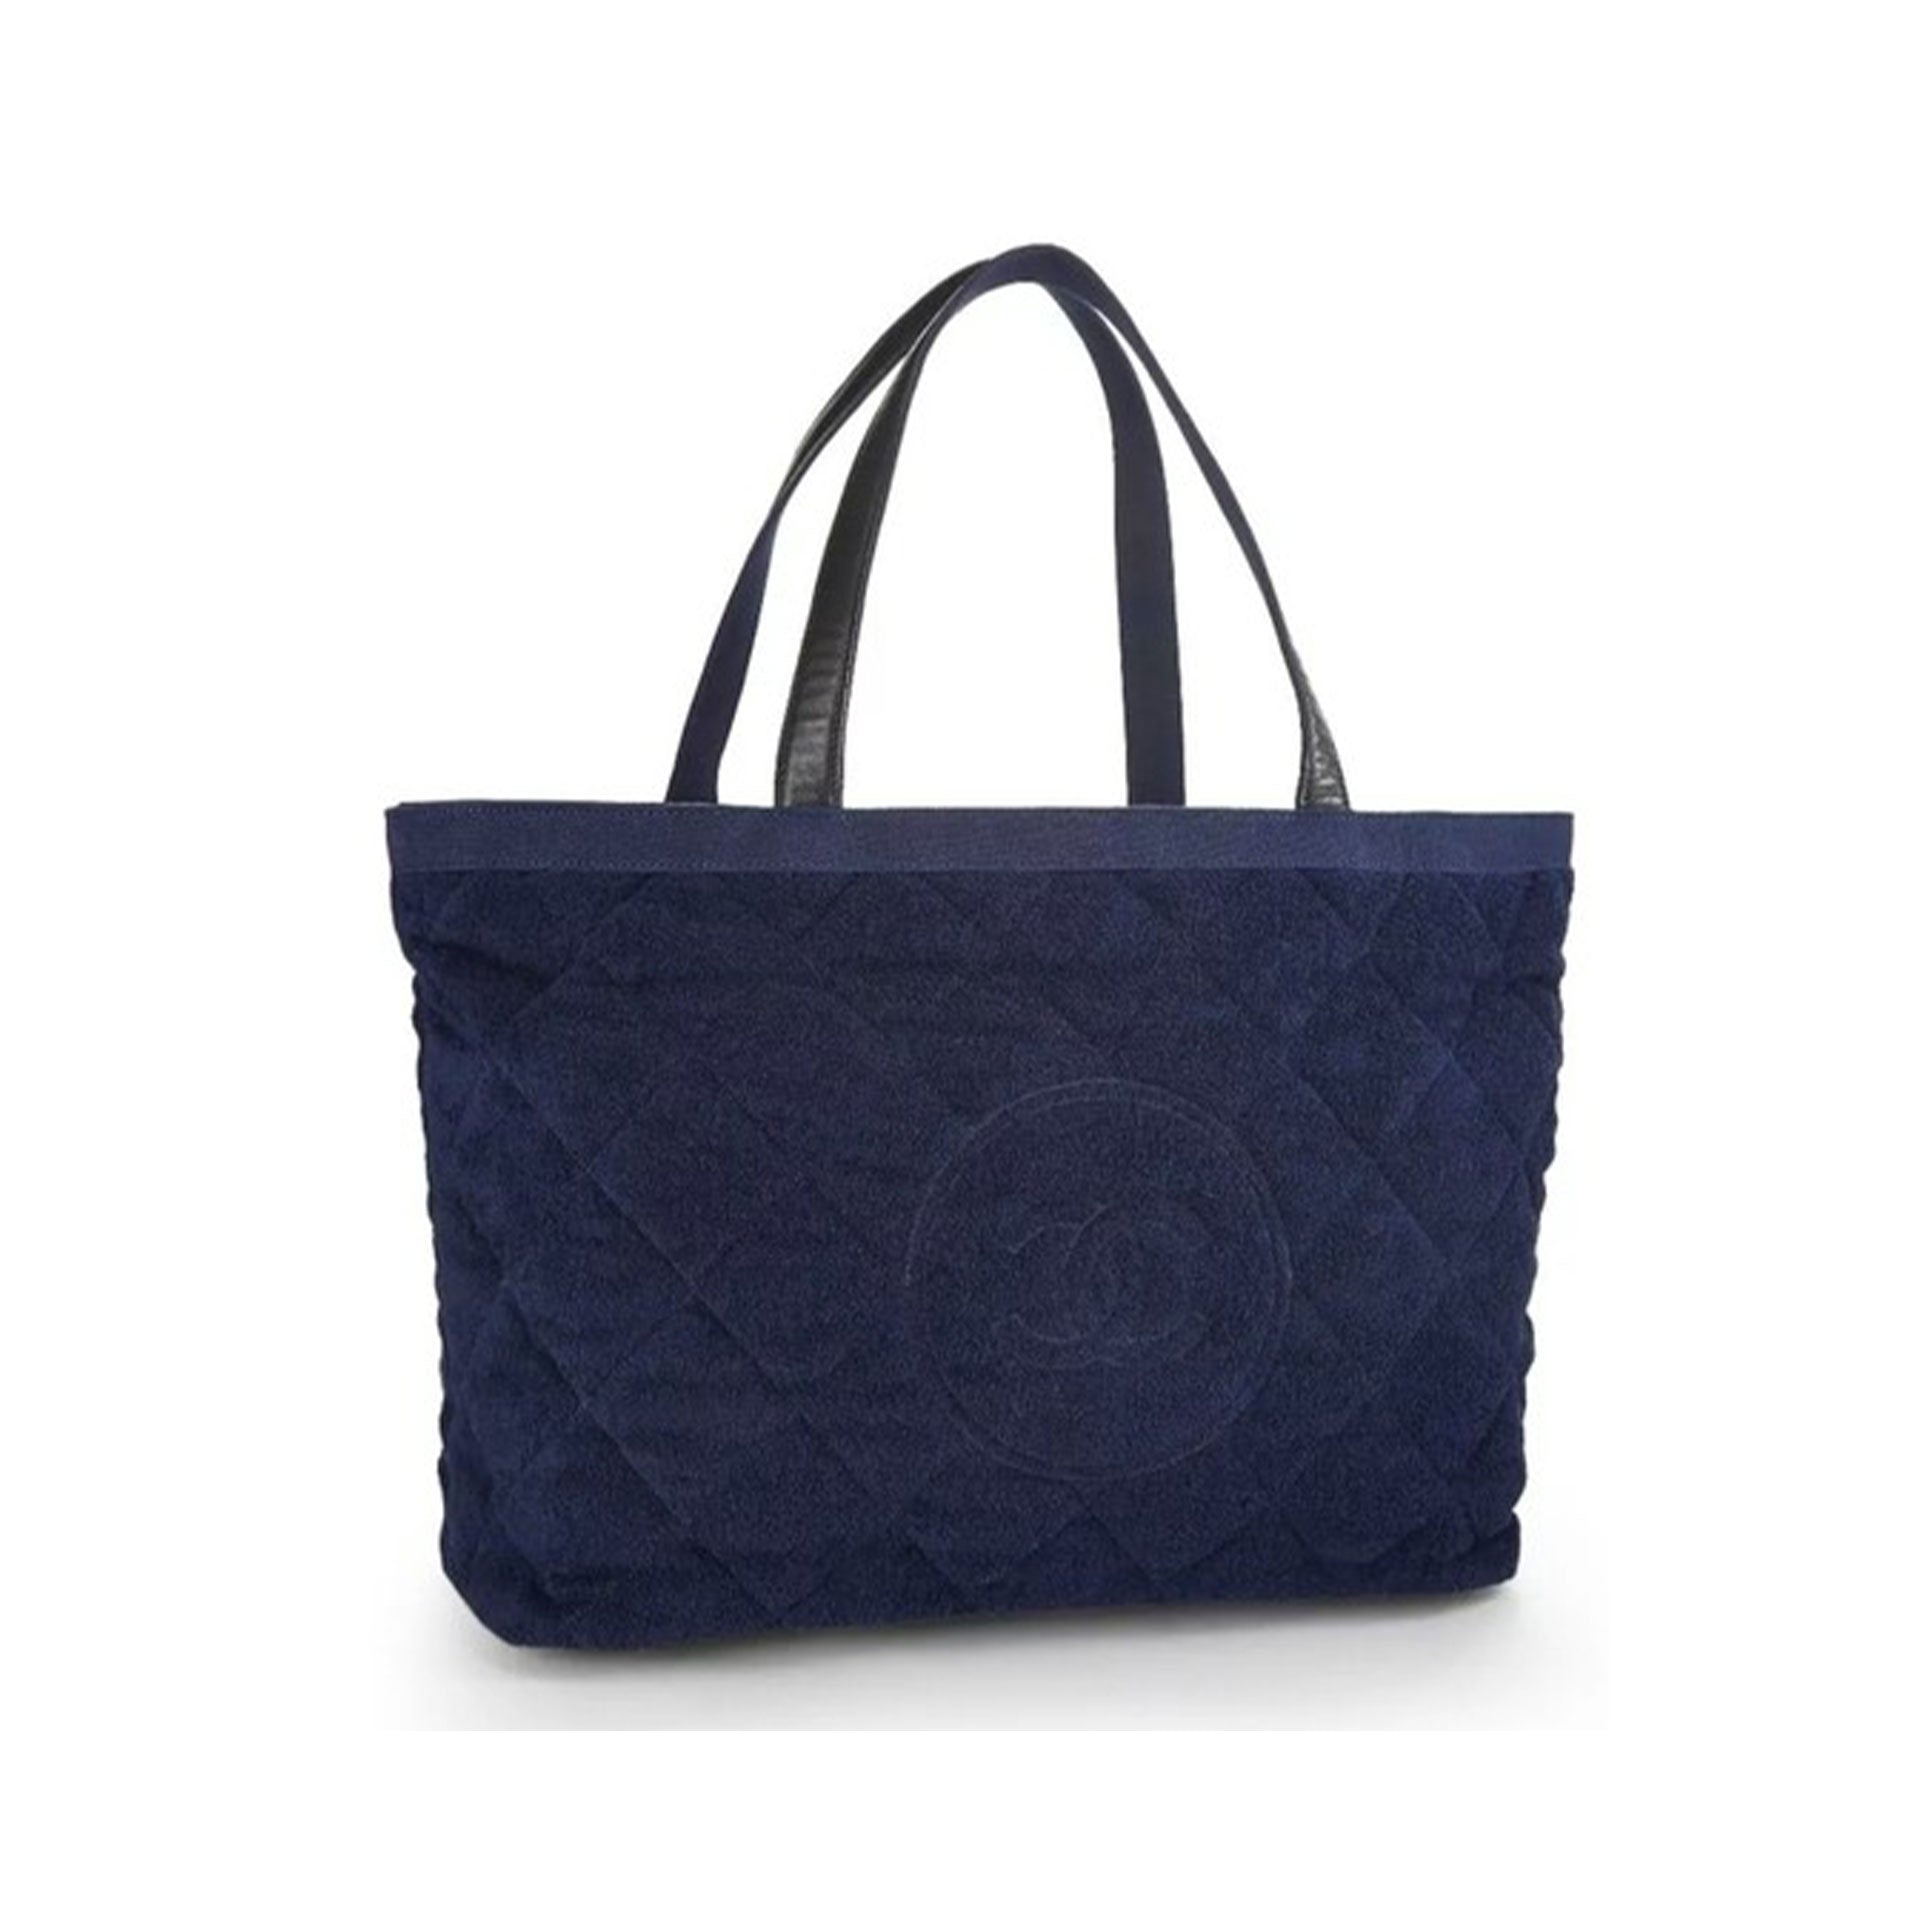 Chanel Timeless Tote XL Navy Blue Beach Bag